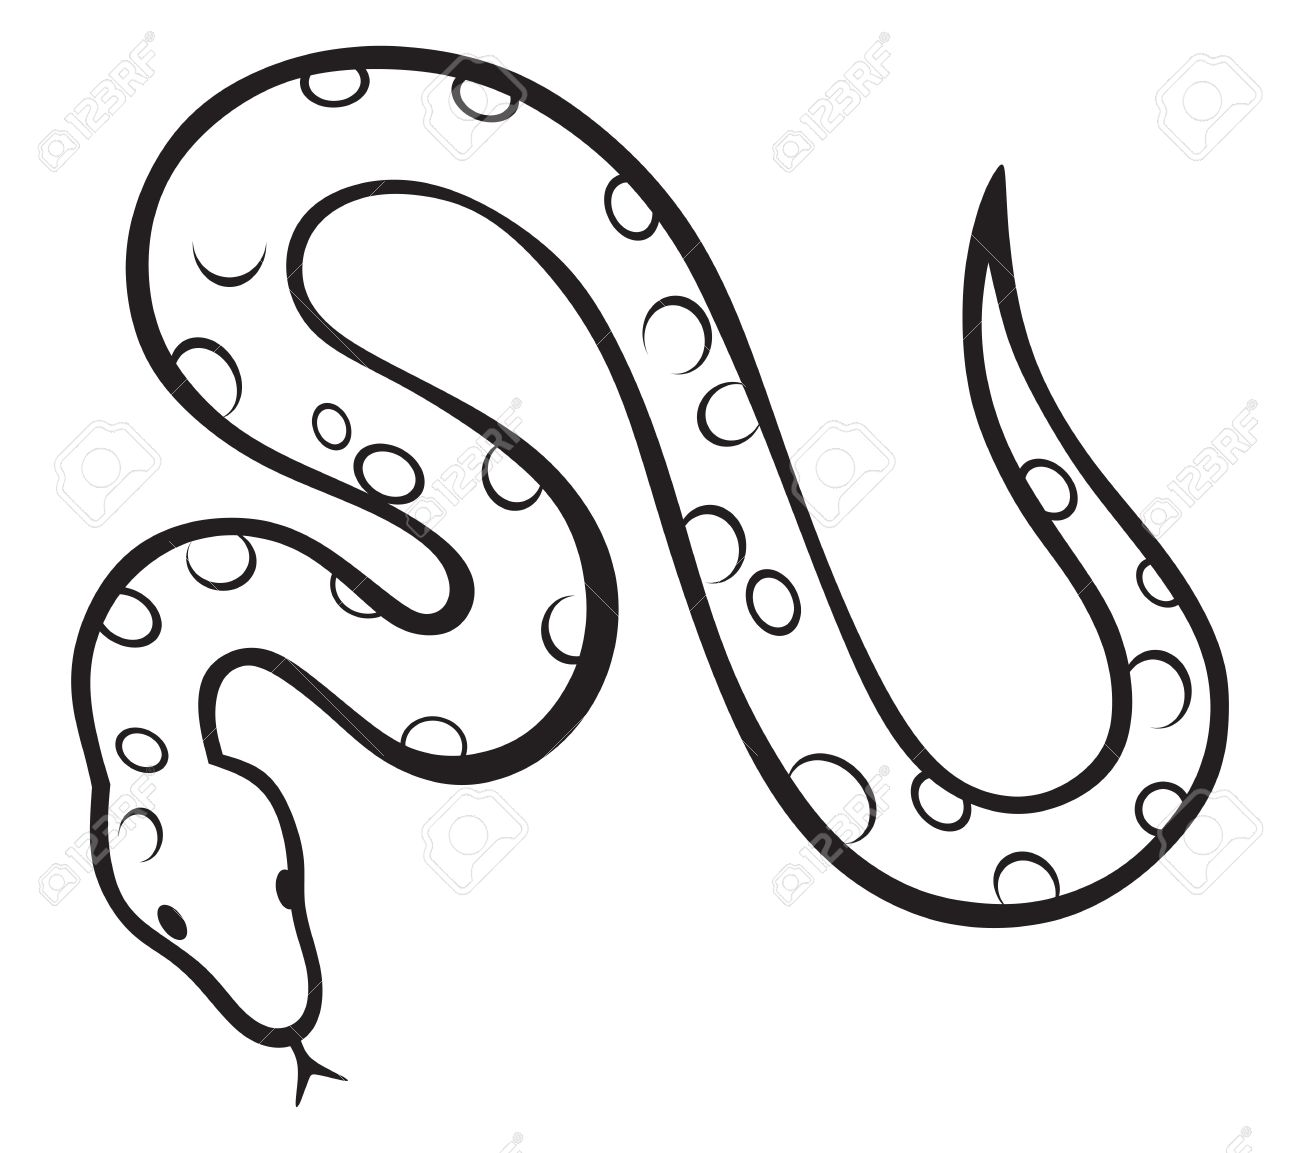 Constrictor clipart #11